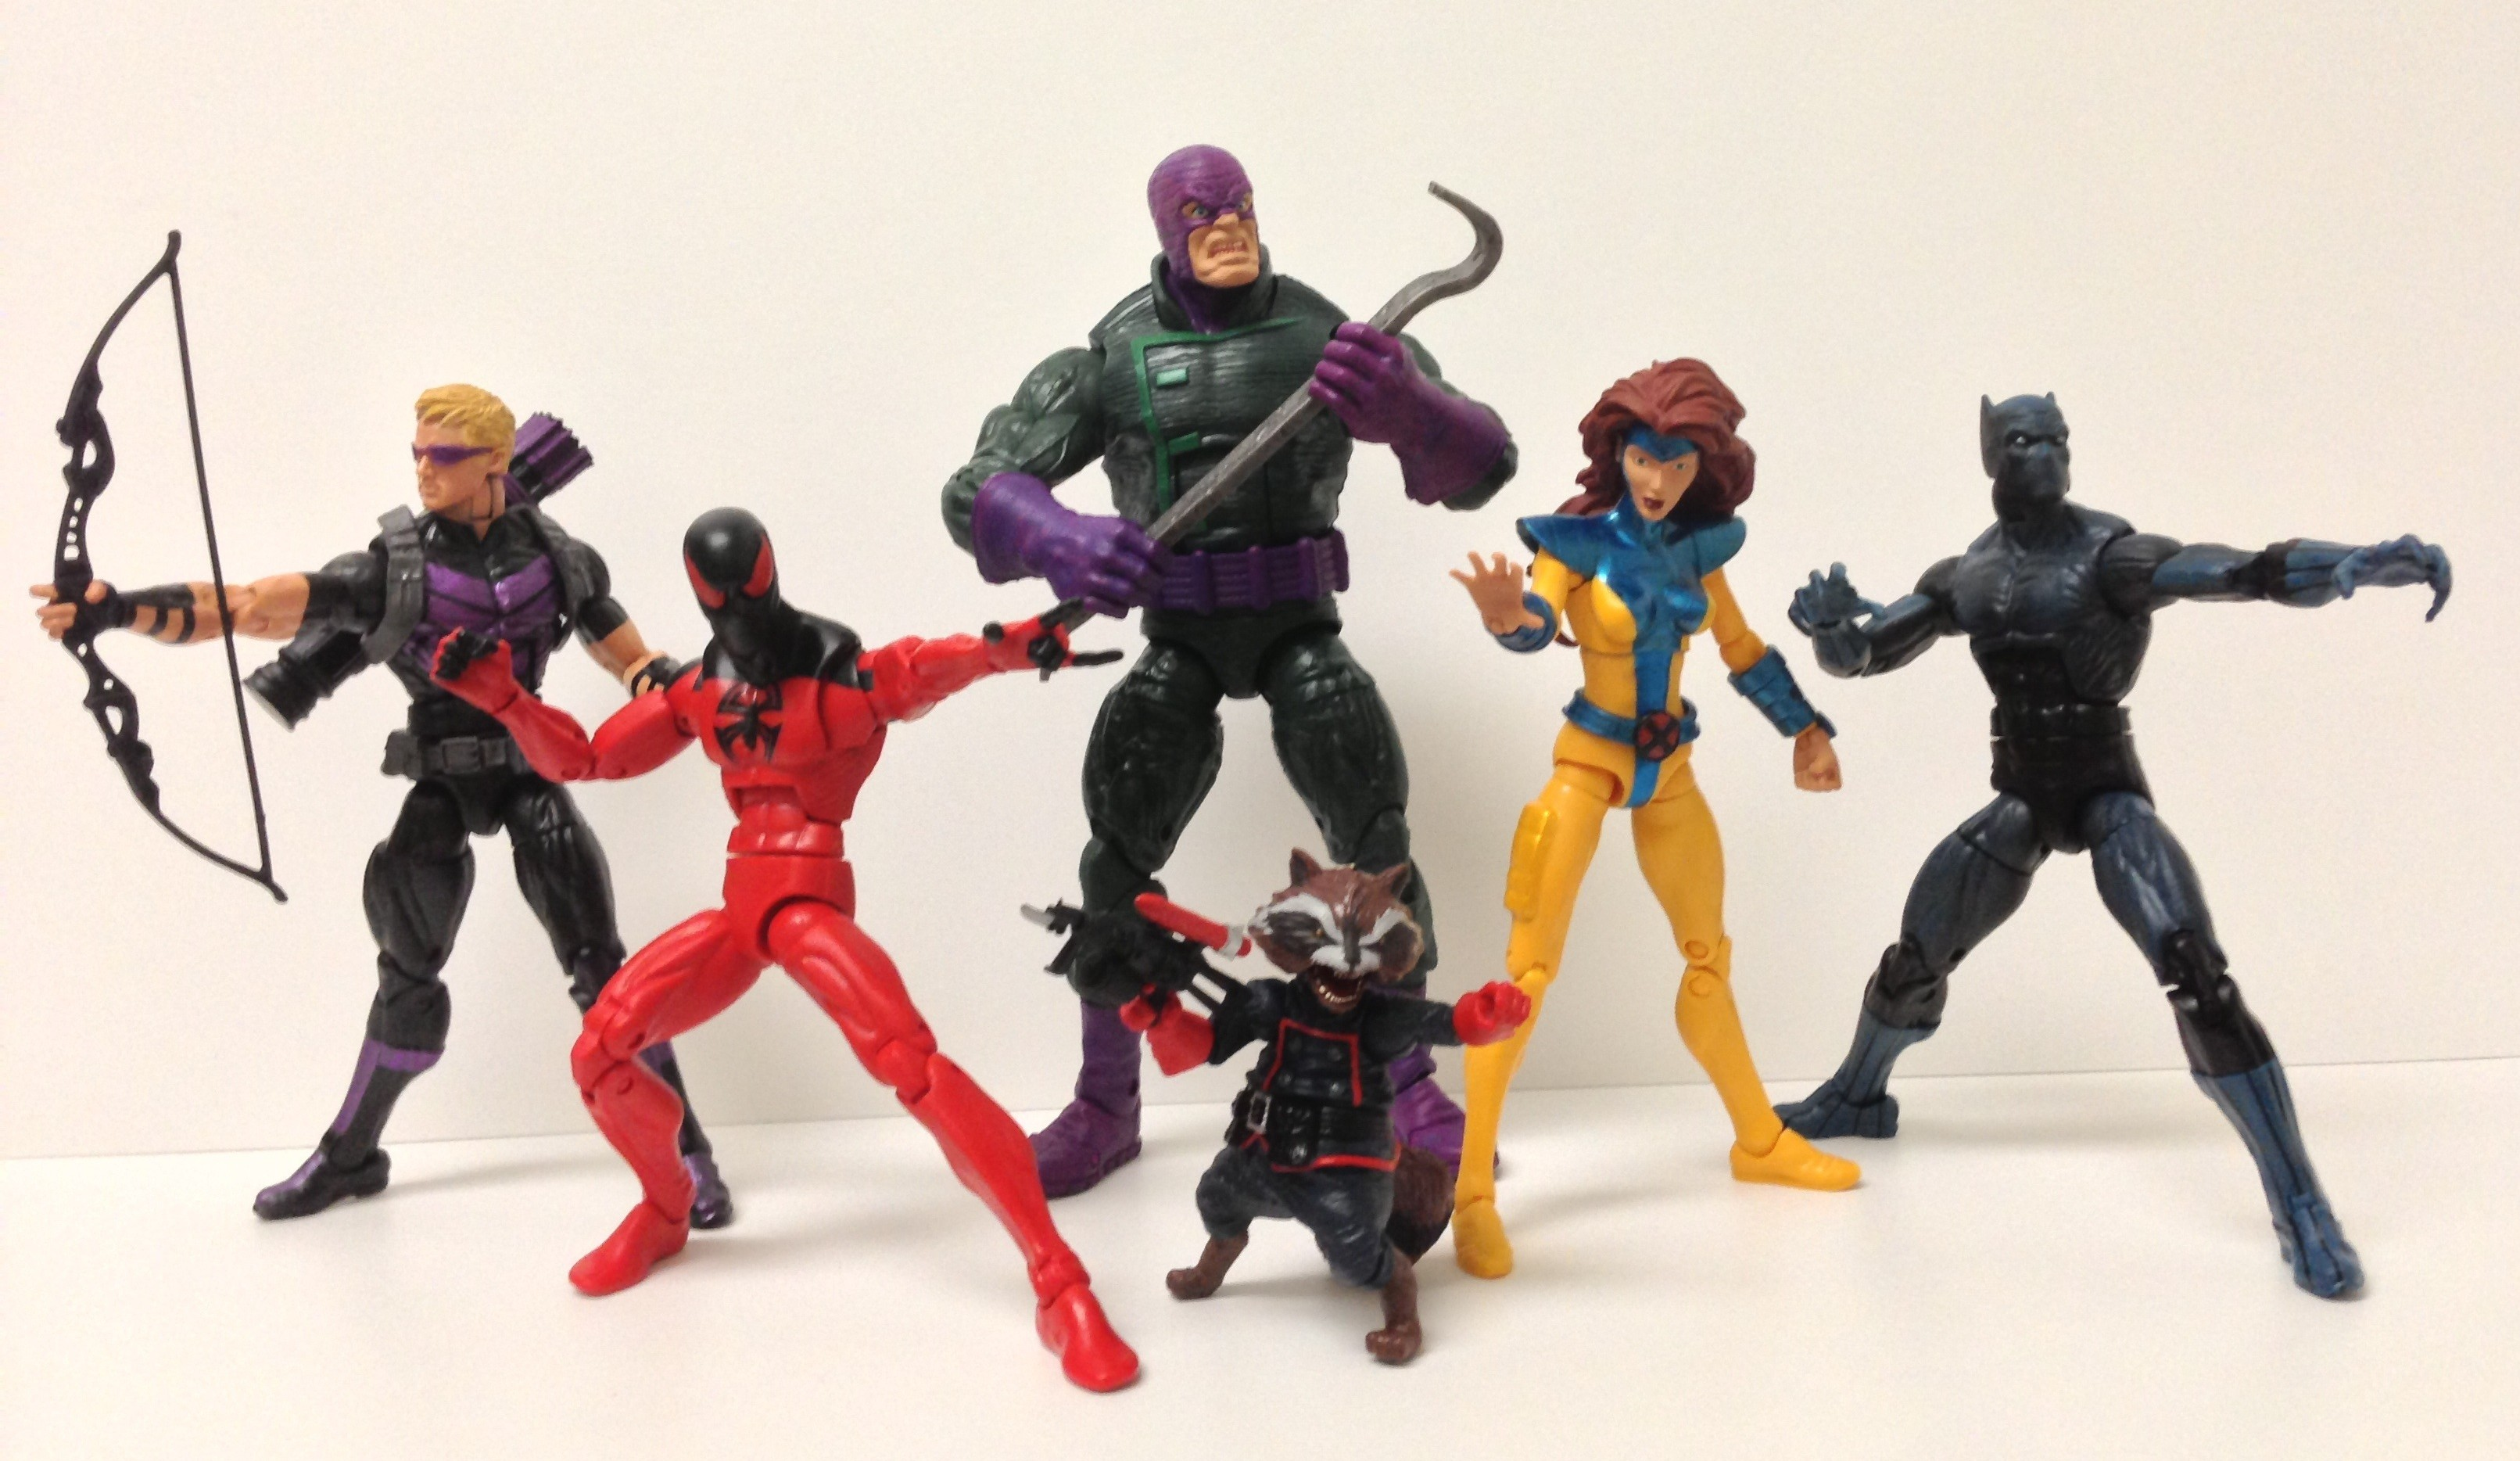 Marvel Legends 2013 Series 2 Wave 5 Scale Photo of Figures